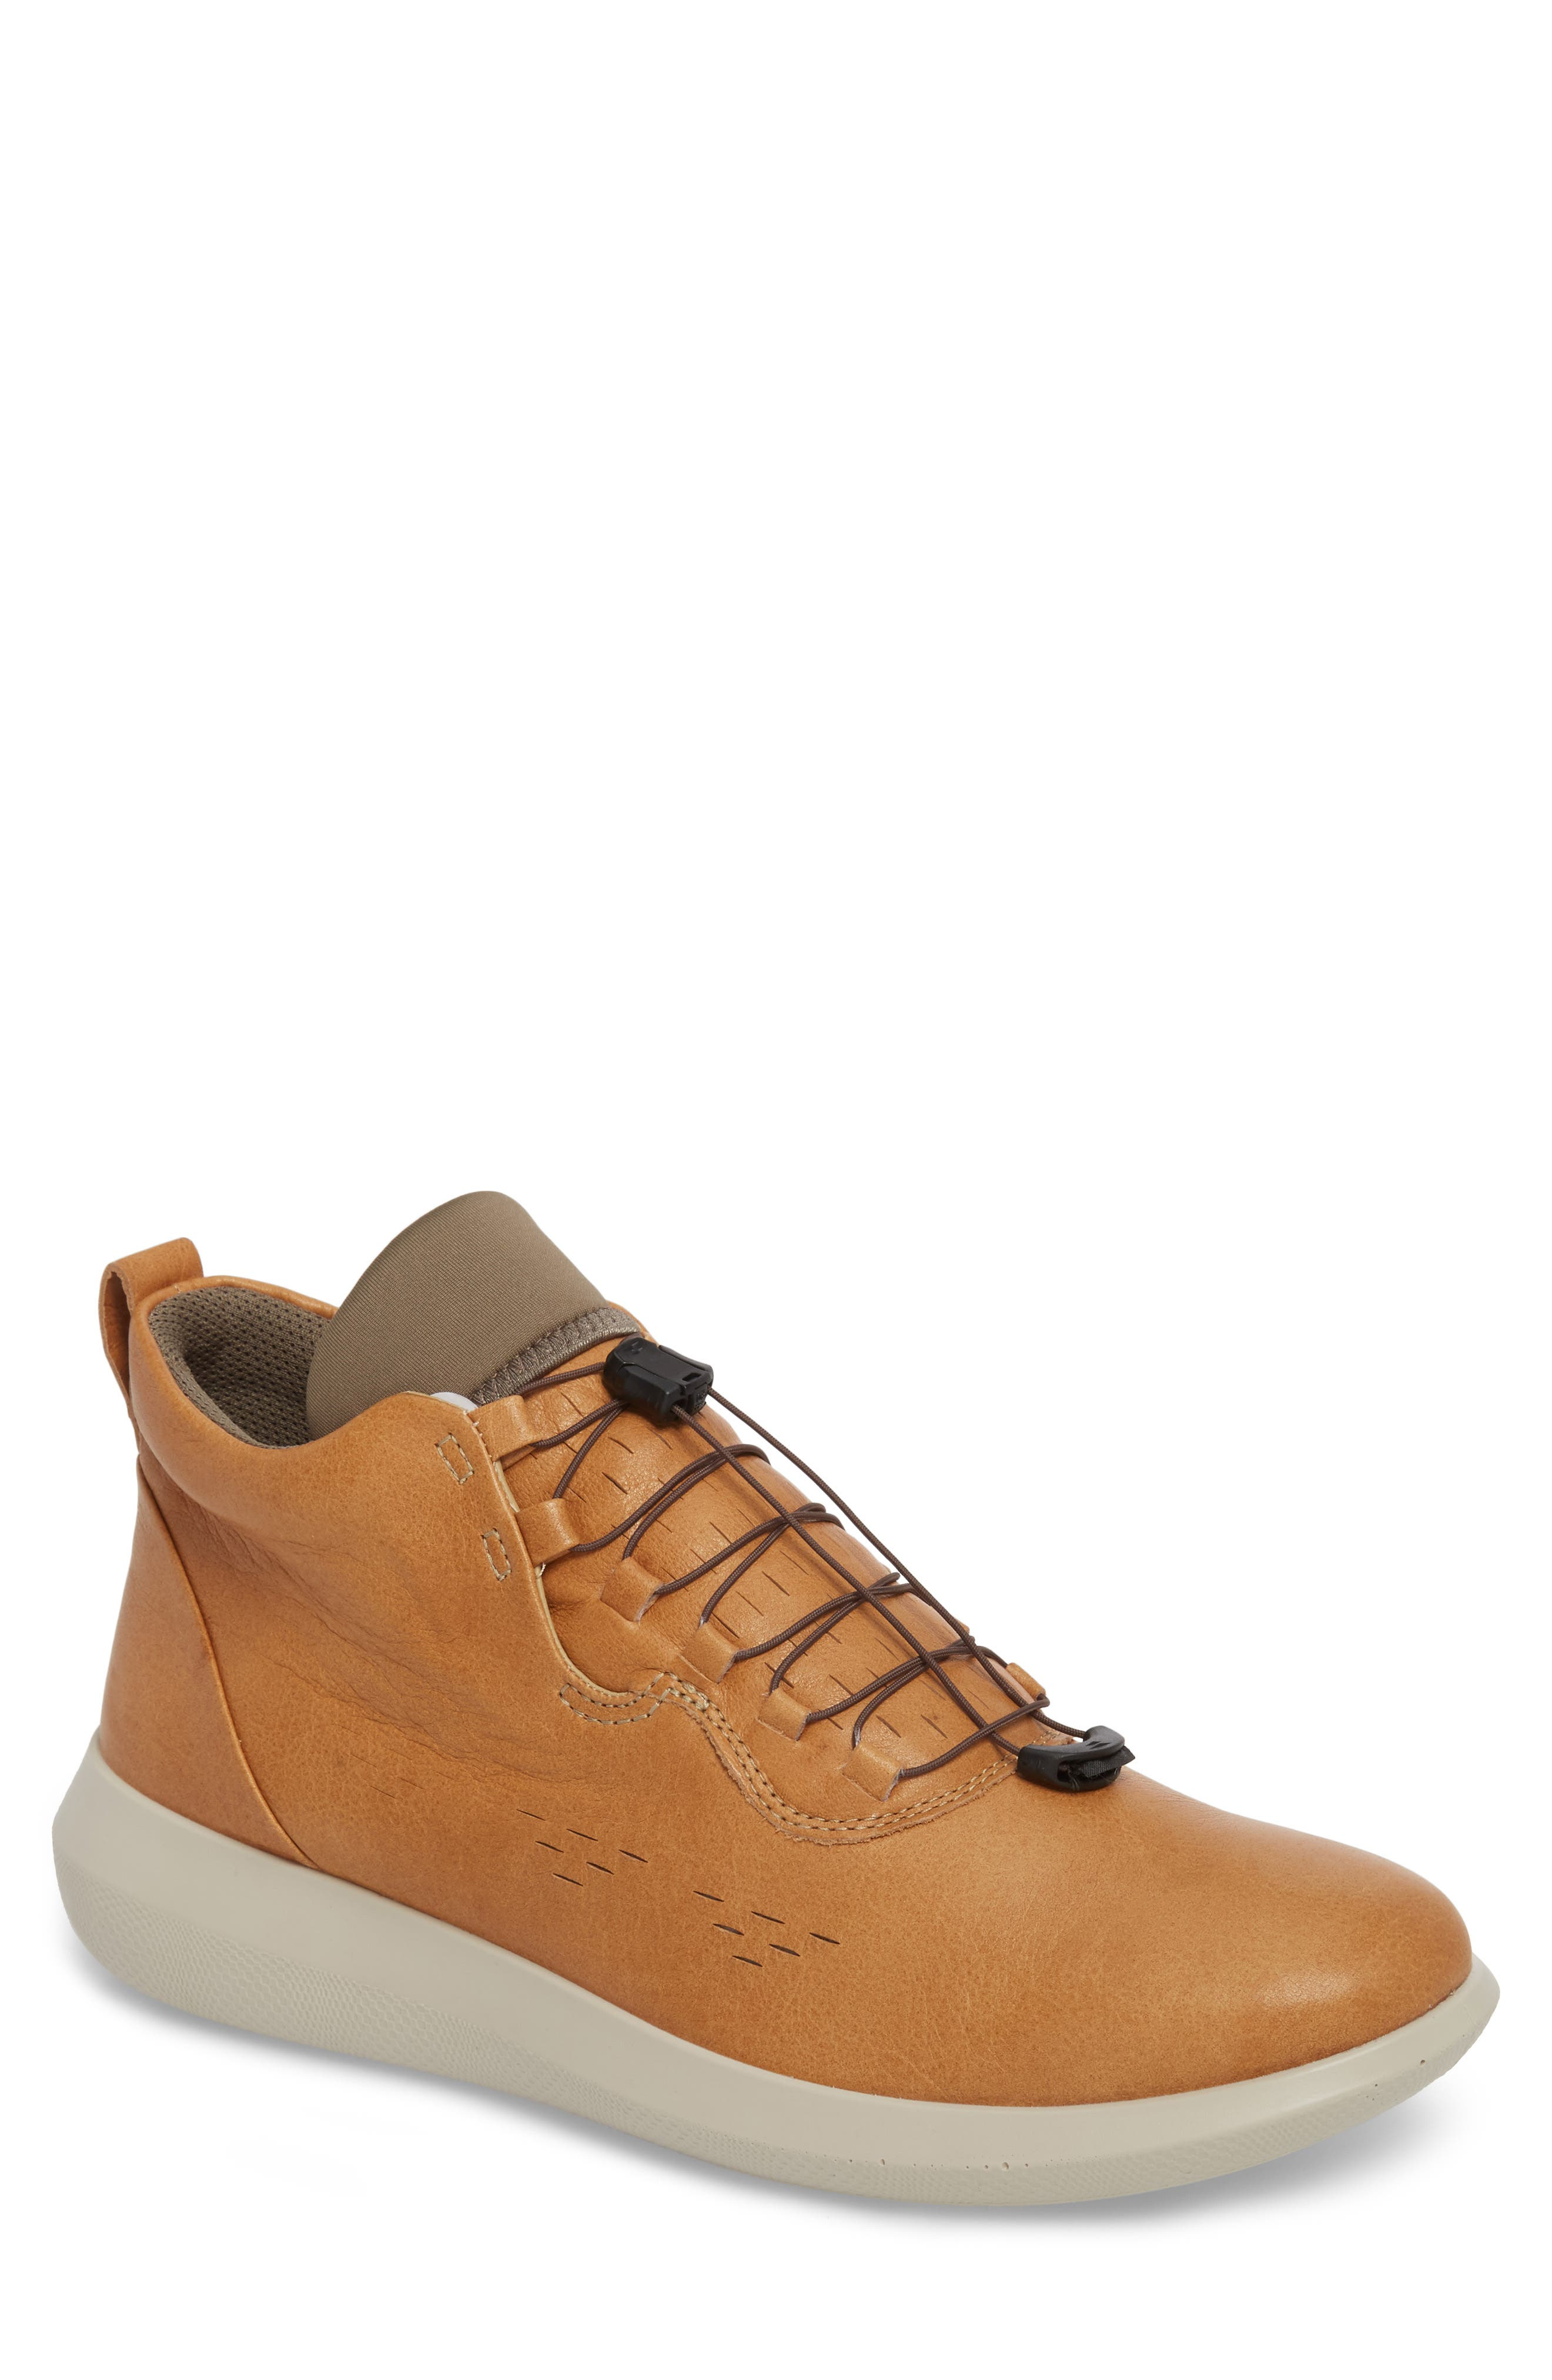 Alternate Image 1 Selected - ECCO Scinapse High Top Sneaker (Men)